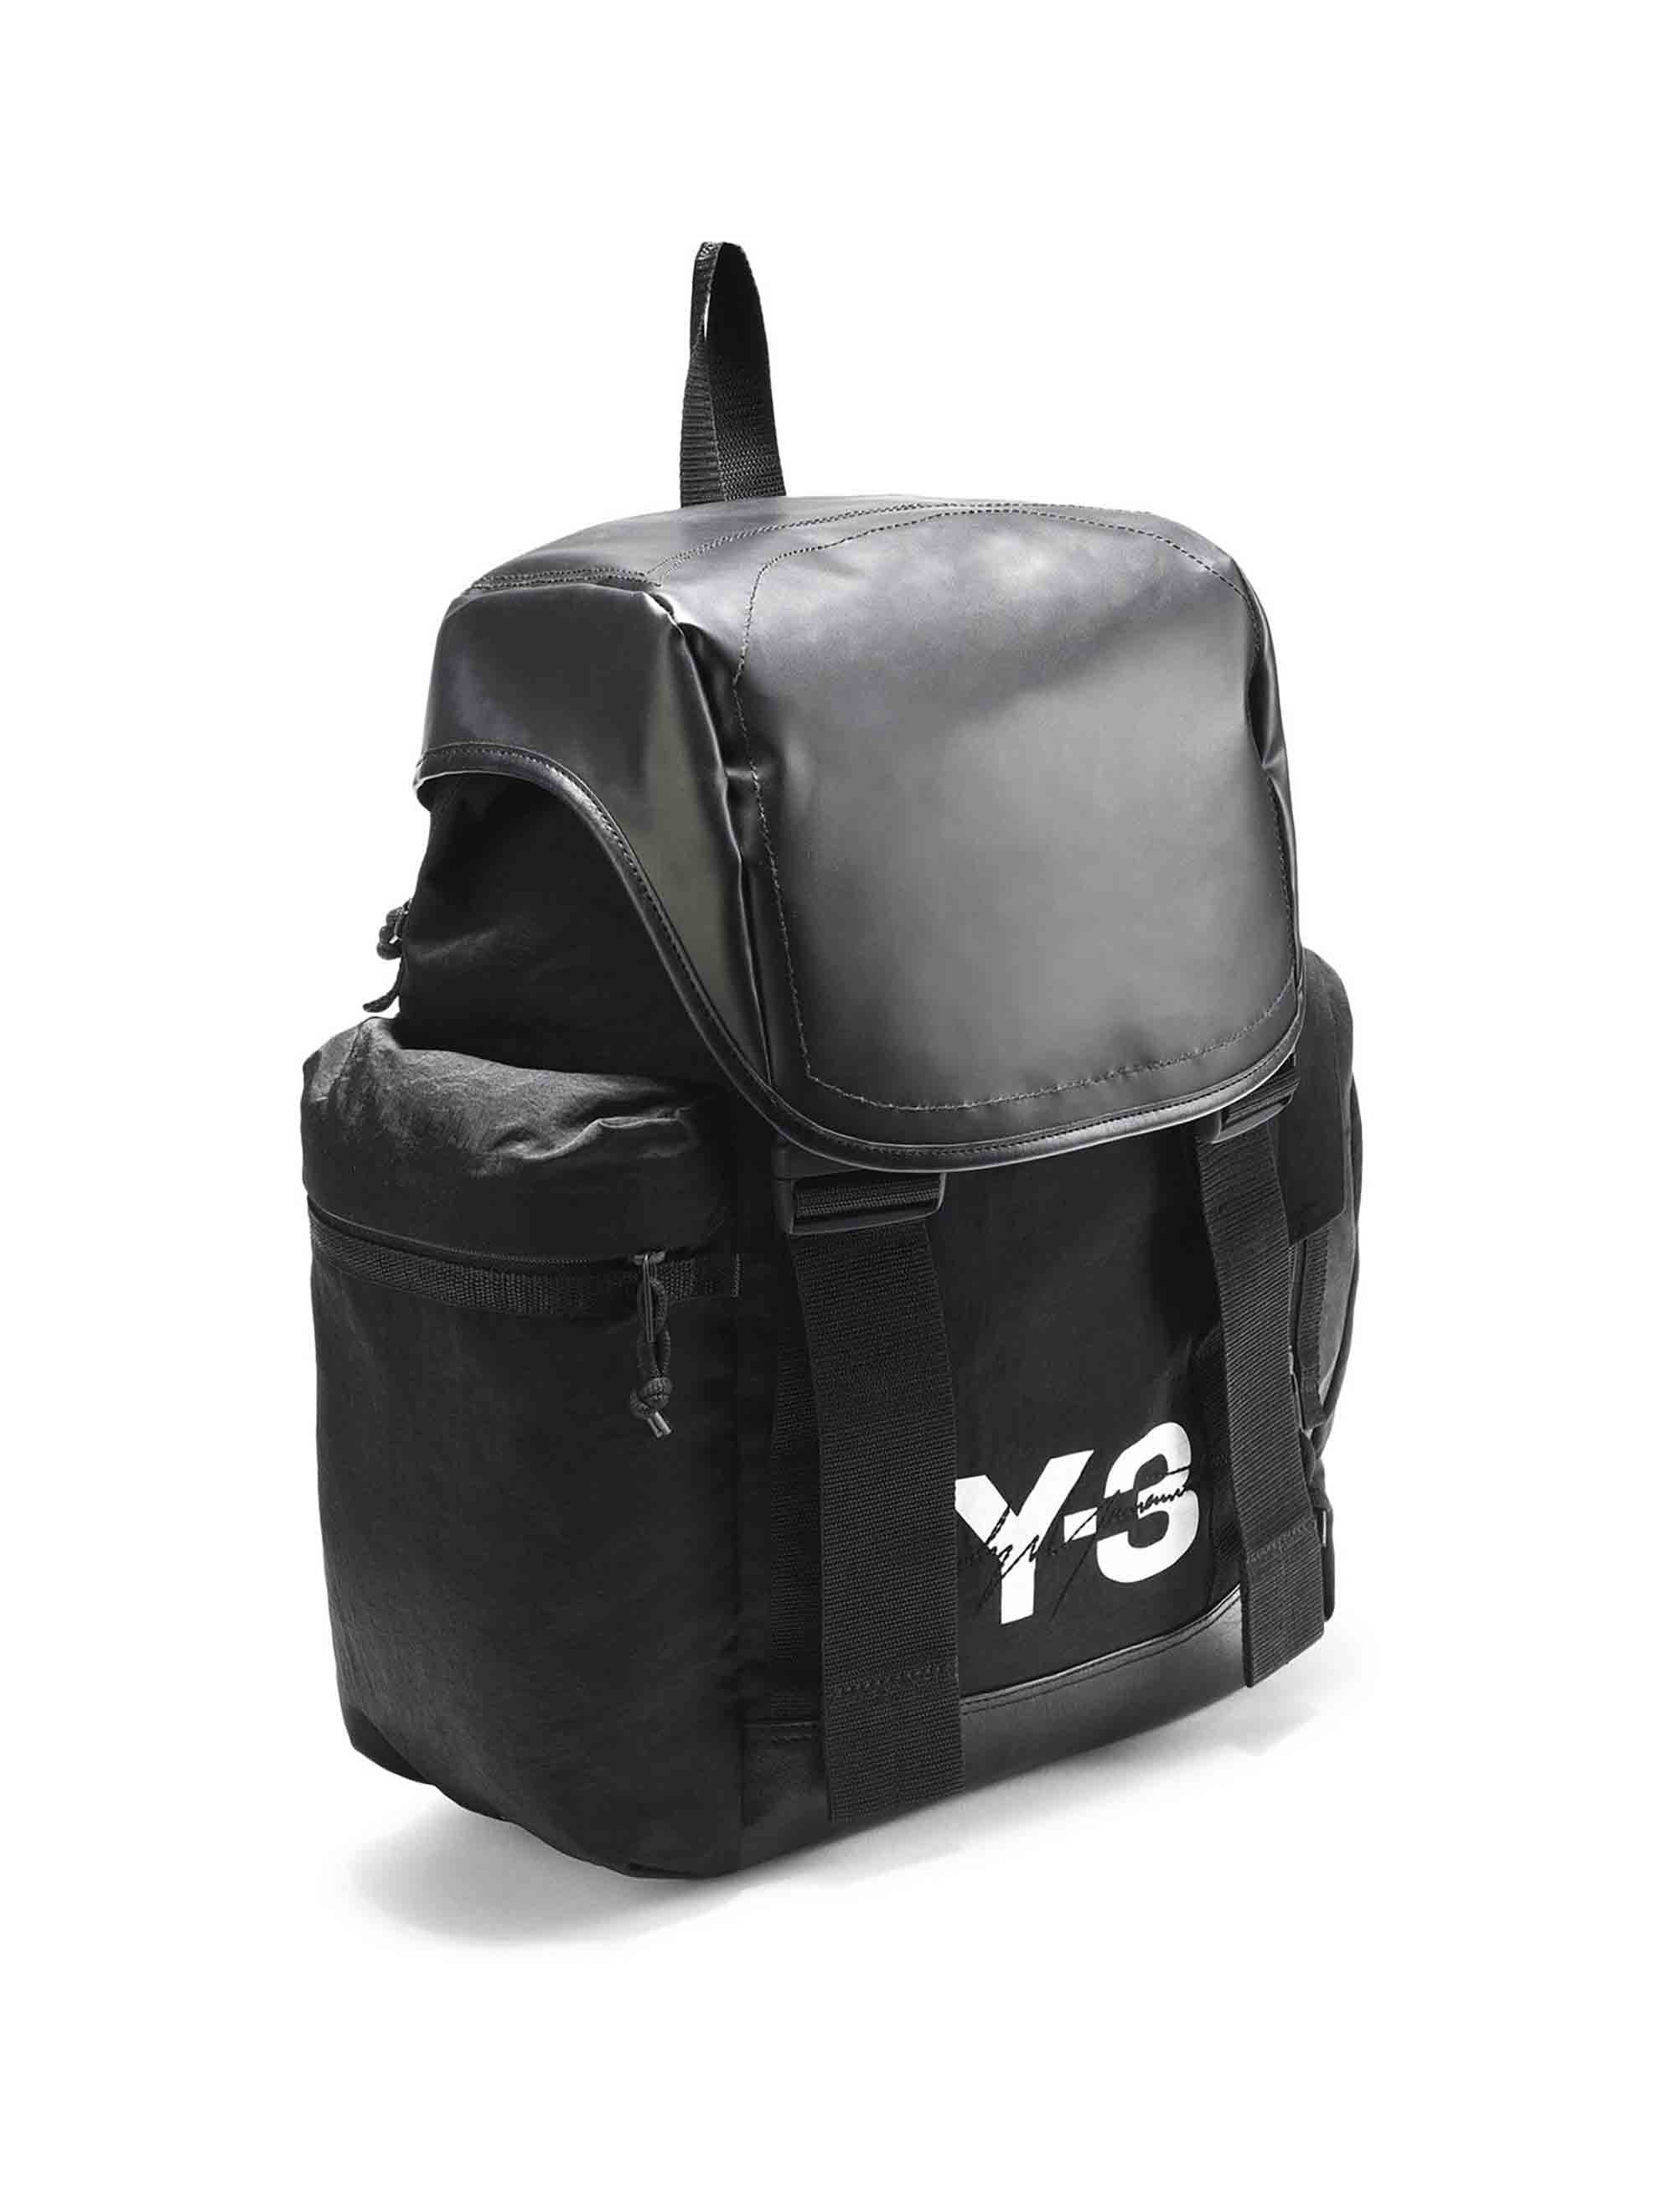 9ca19b9acf36 Mimma Ninni – Luxury and Fashion Shopping. Adidas Y-3 Mobility Bag ...